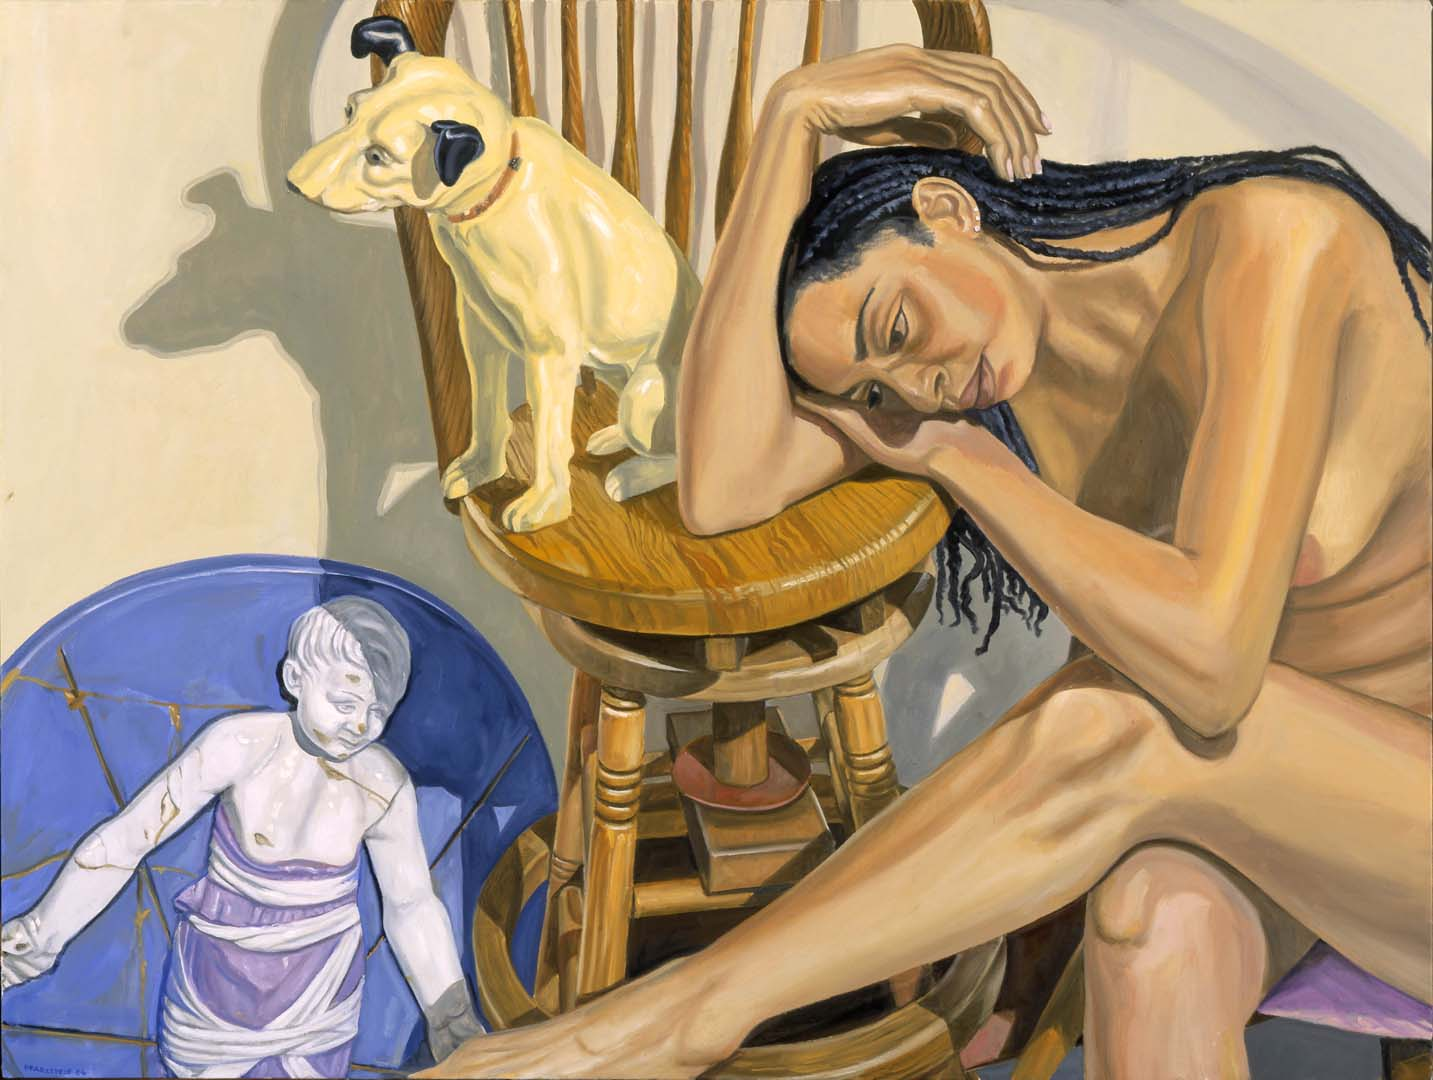 "2006 Model with HMV Dog and Rennaissance Bambino Oil on Canvas 36"" x 48"""